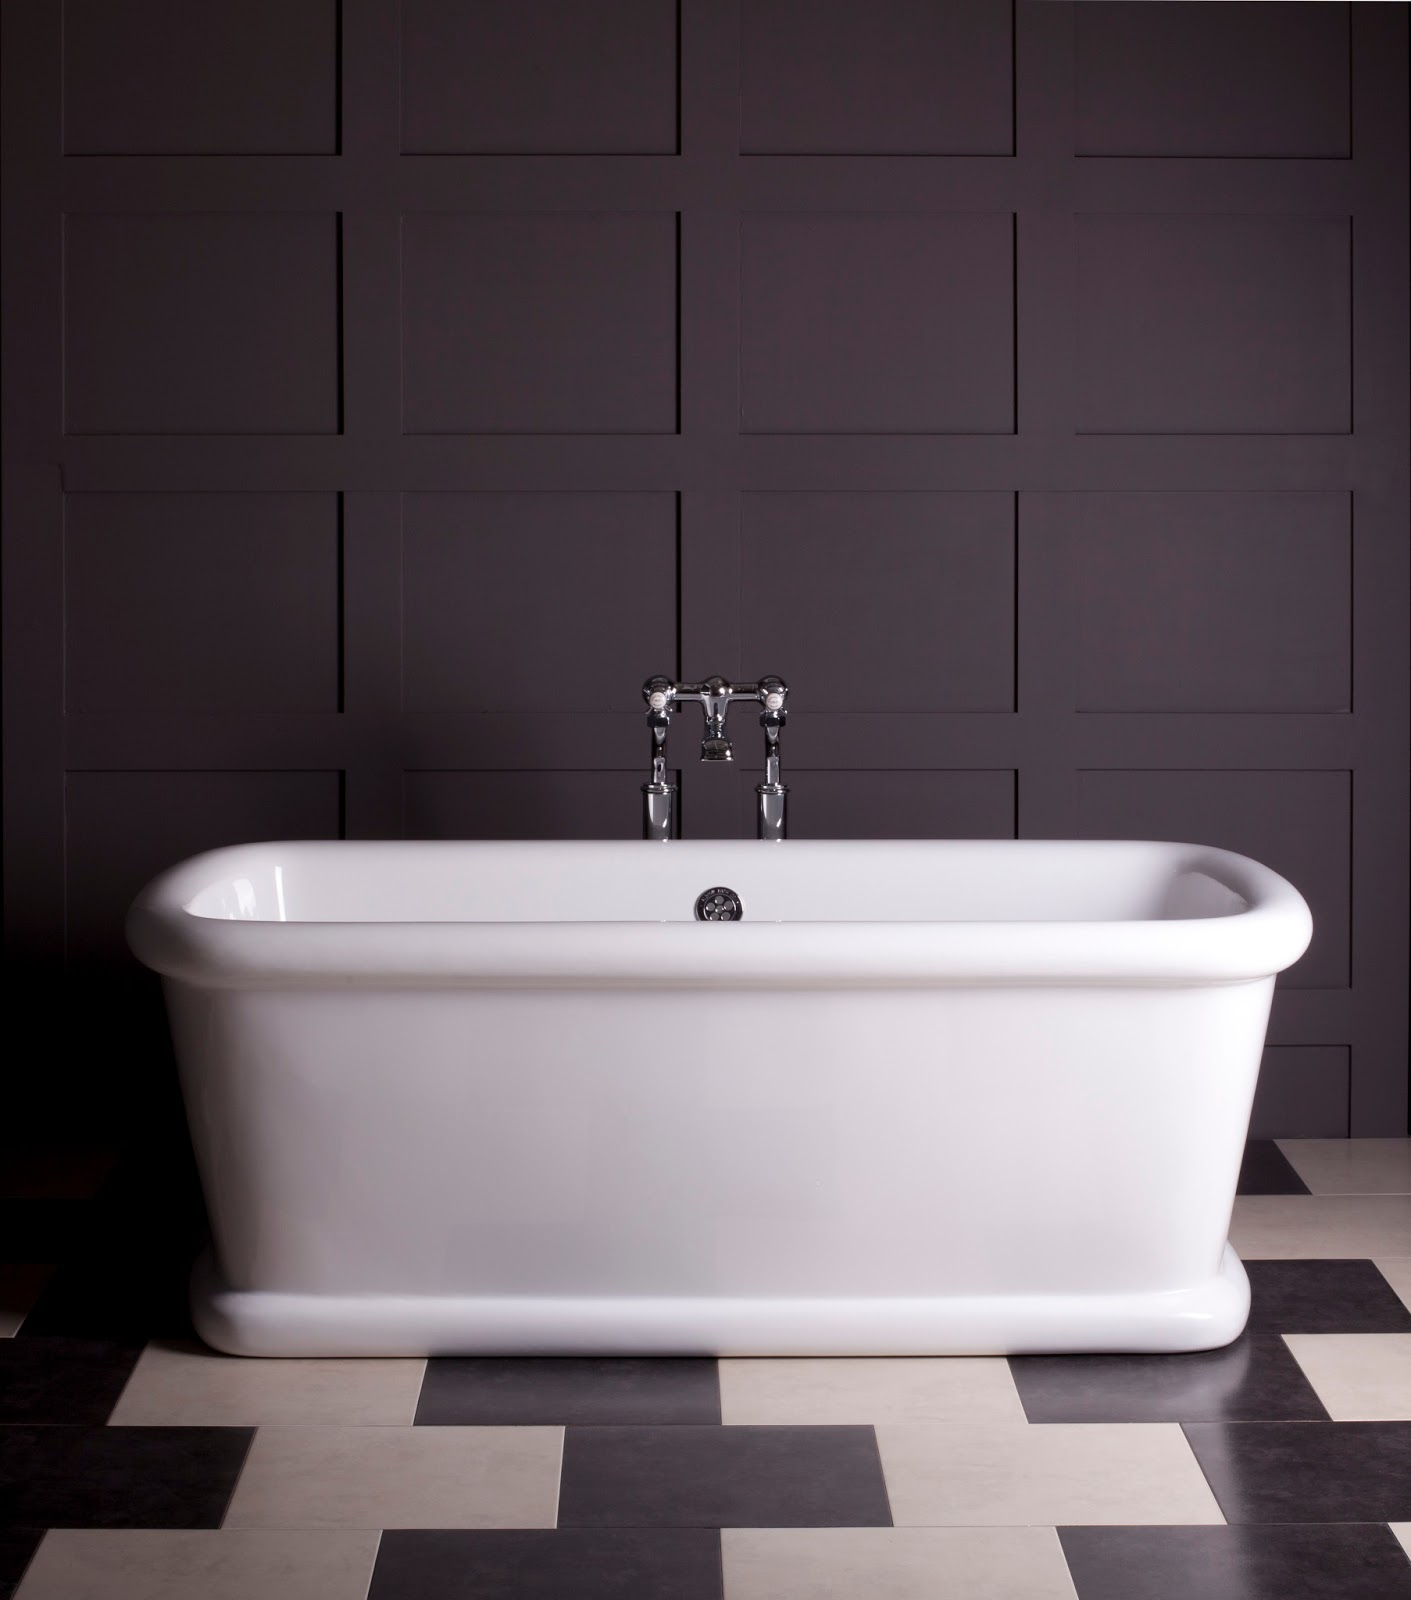 The Albion Bath Company Ltd Small Free Standing Bath Tubs